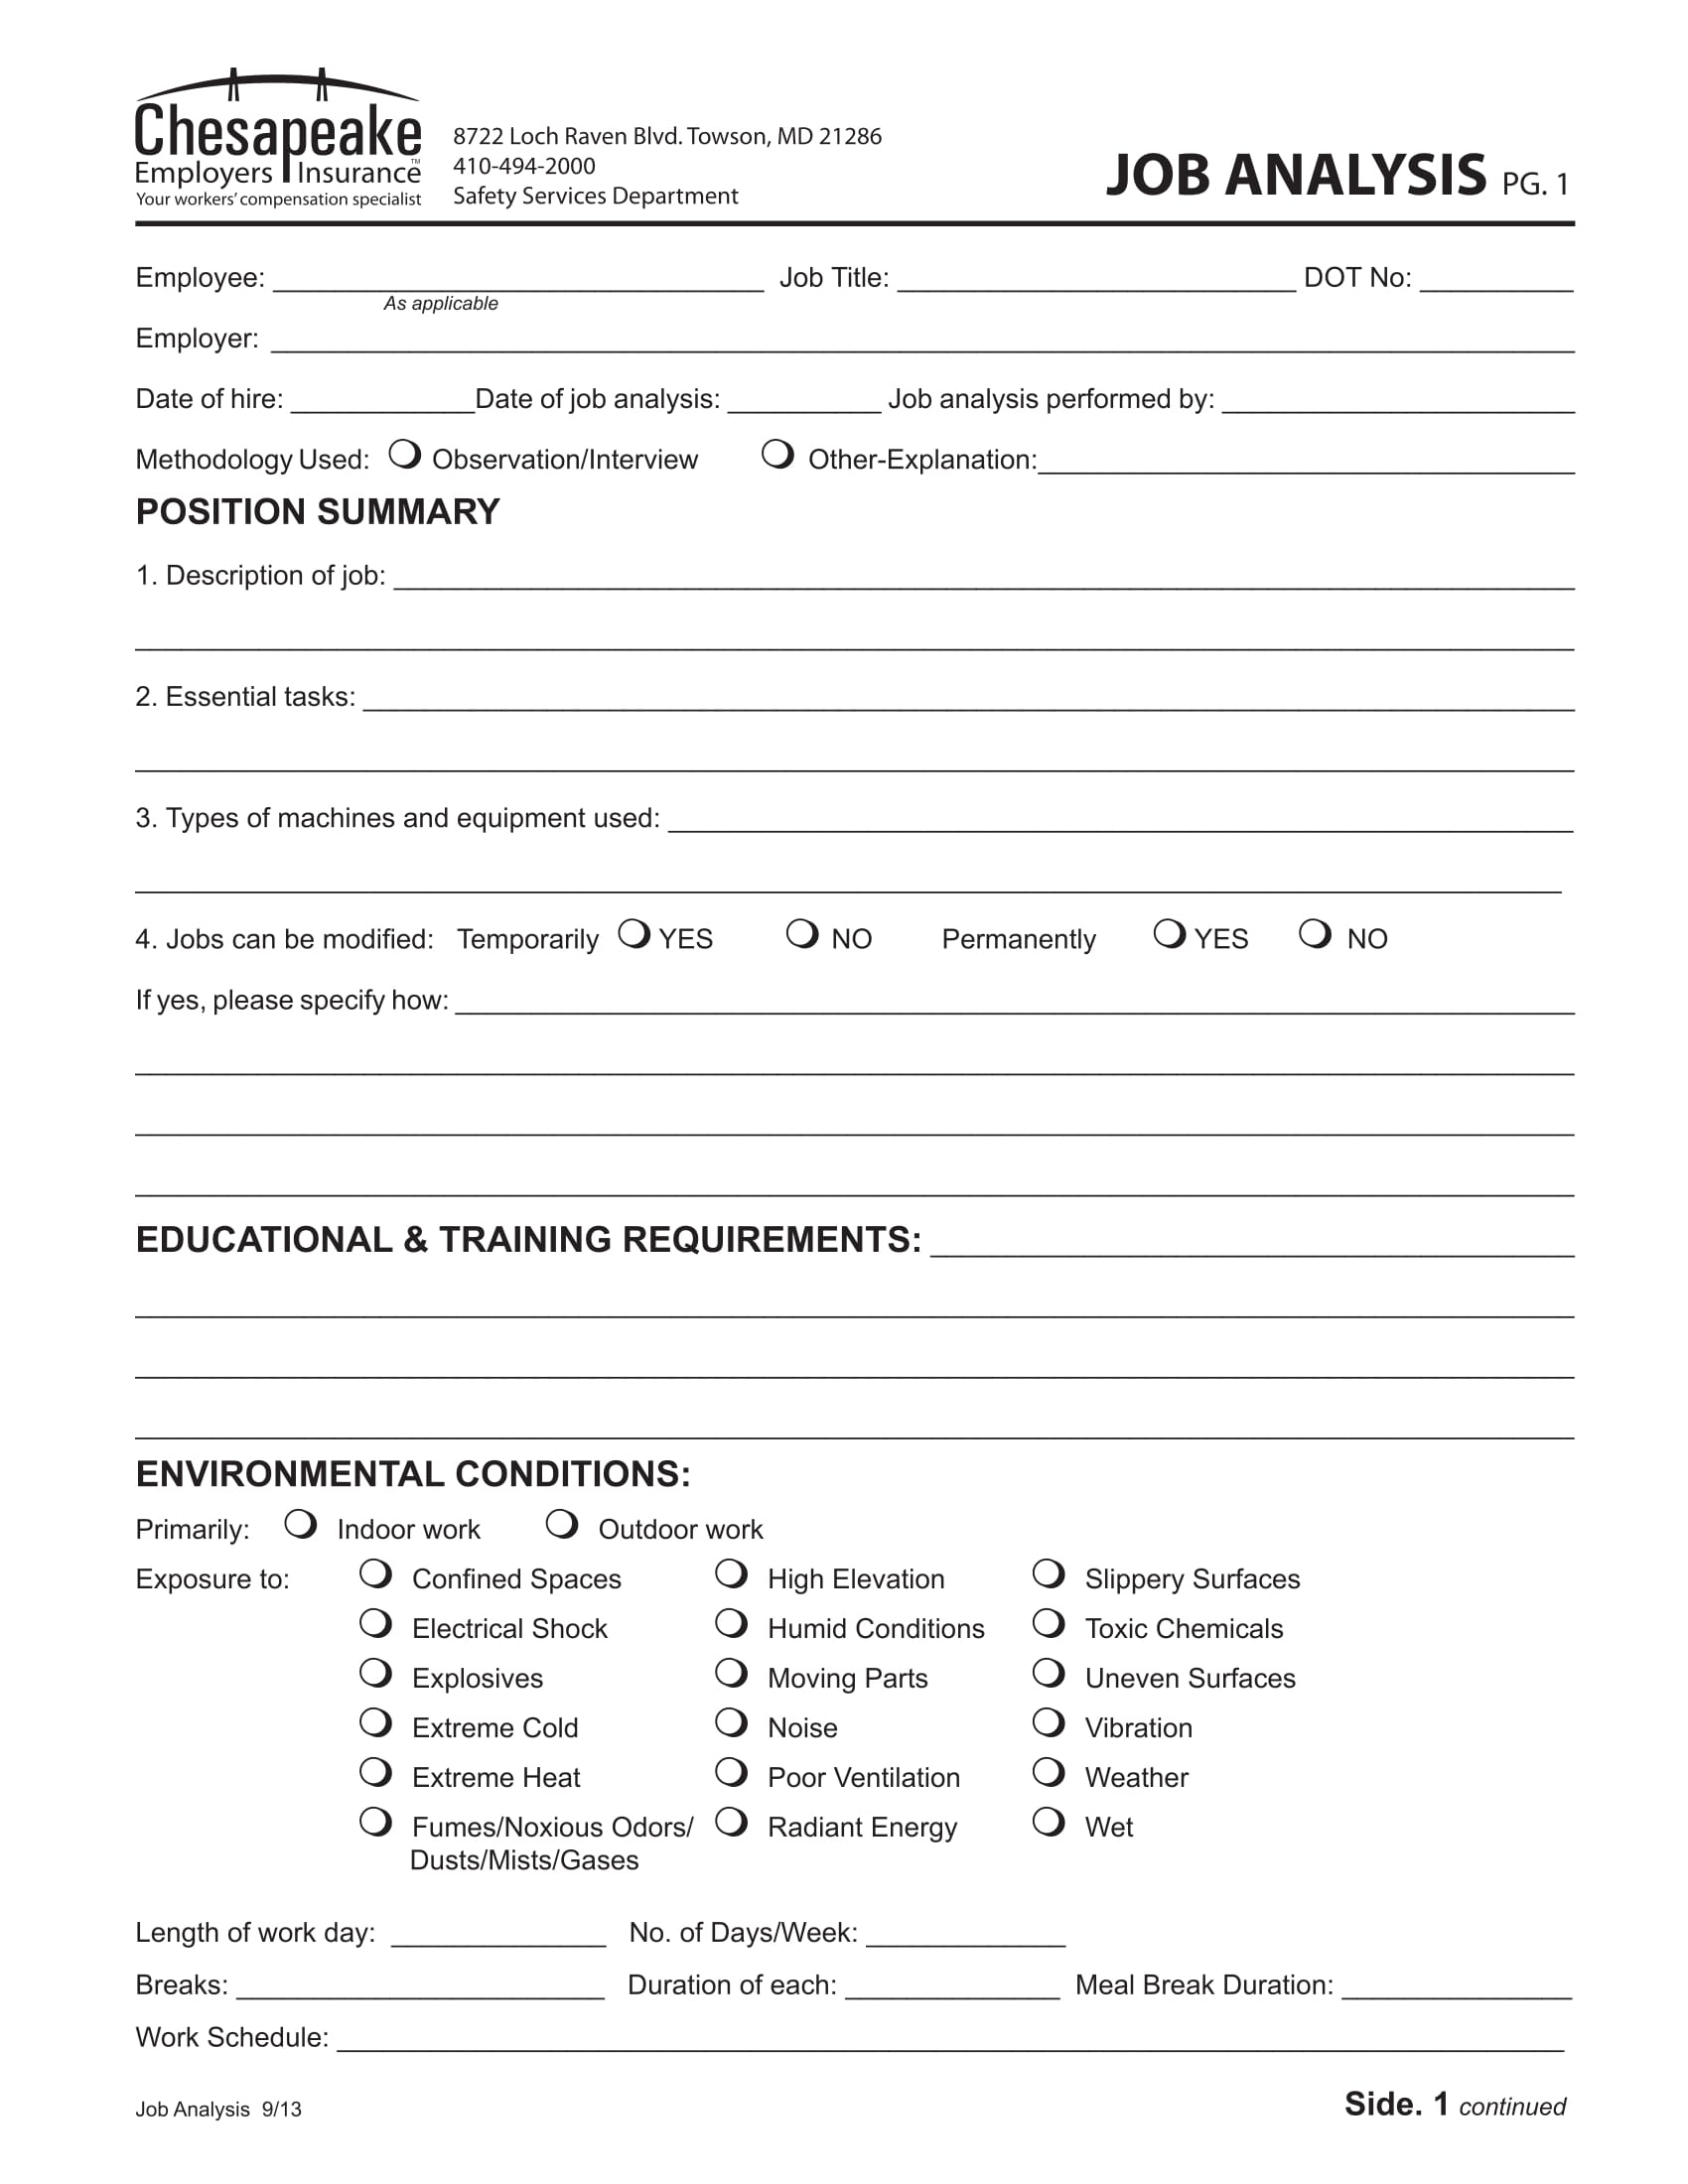 employee job analysis form 1